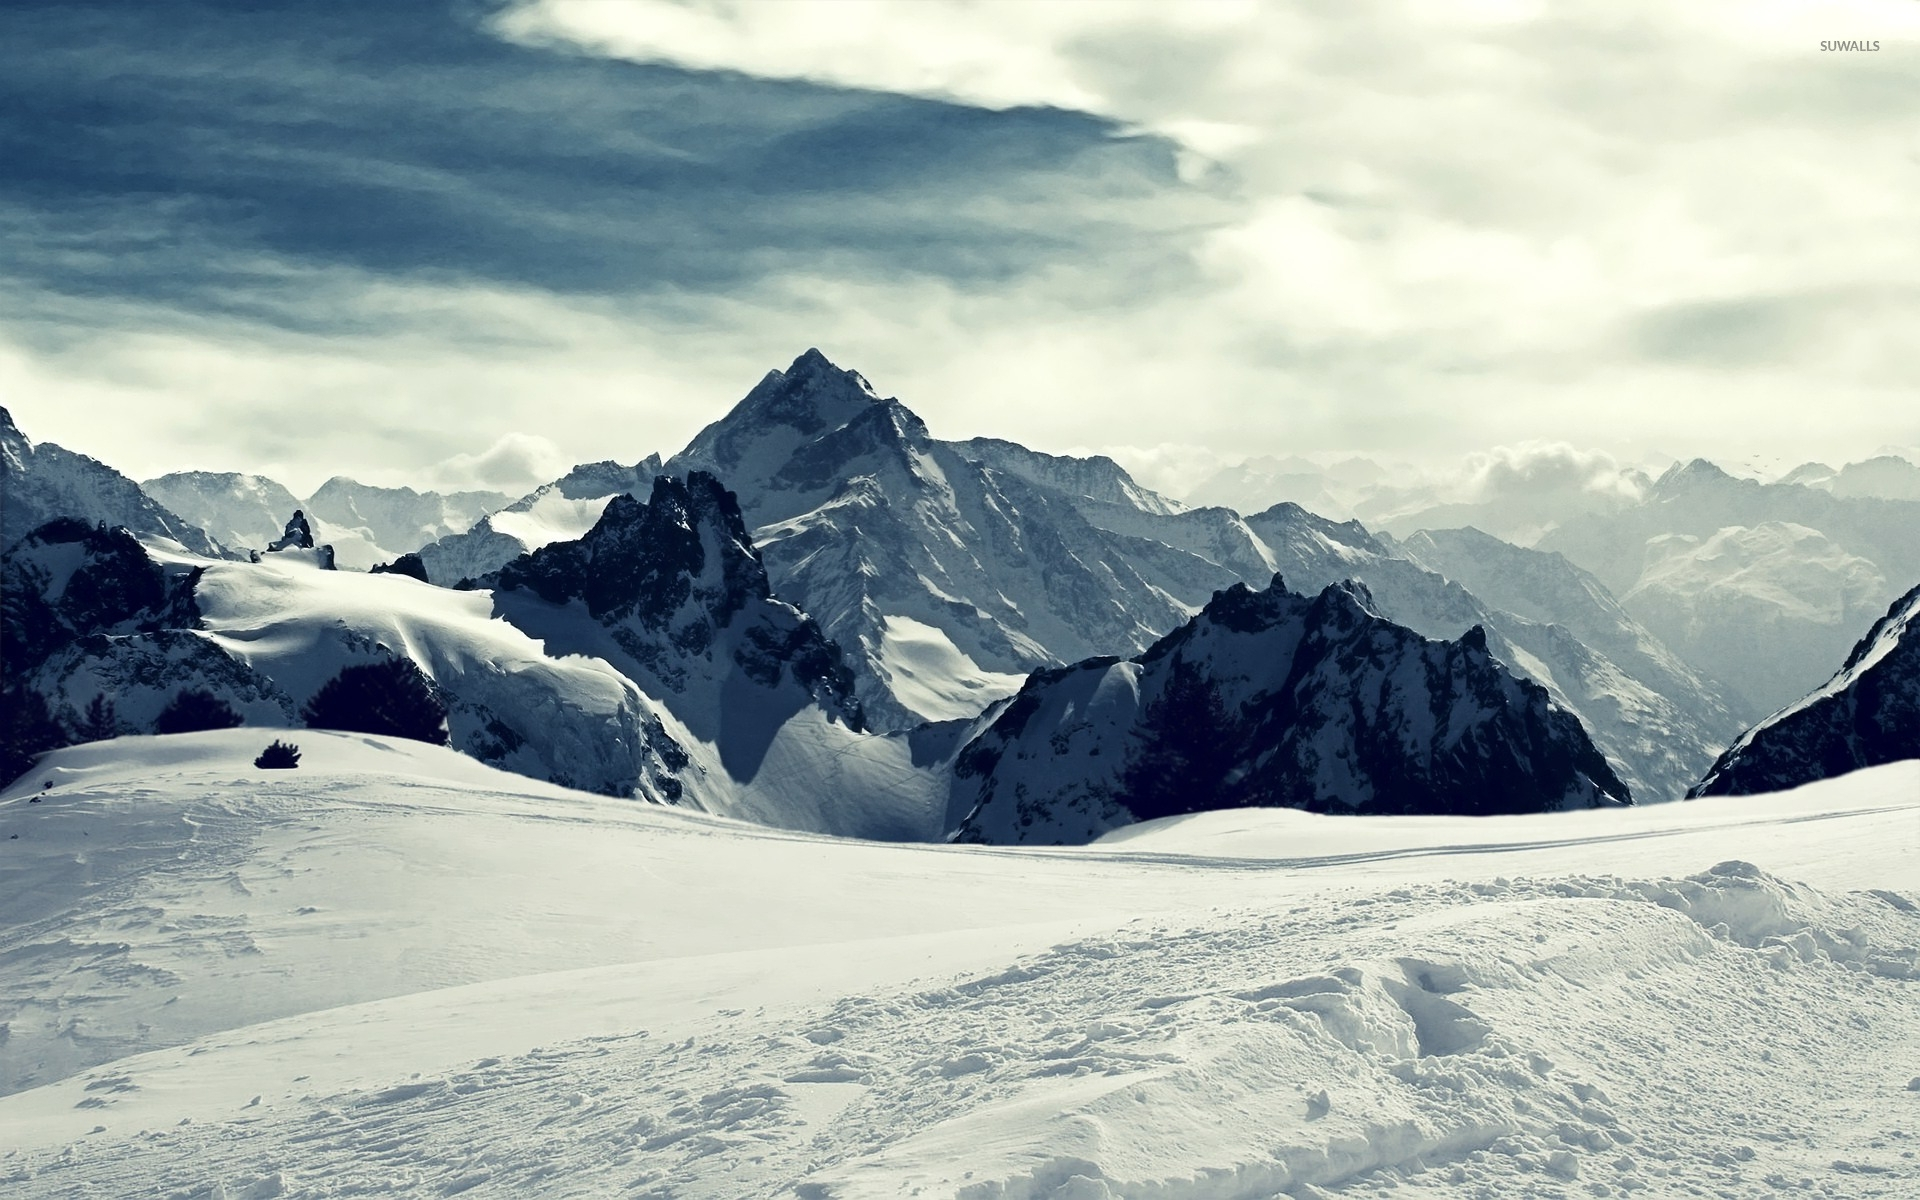 snowy mountains wallpaper - nature wallpapers - #16029